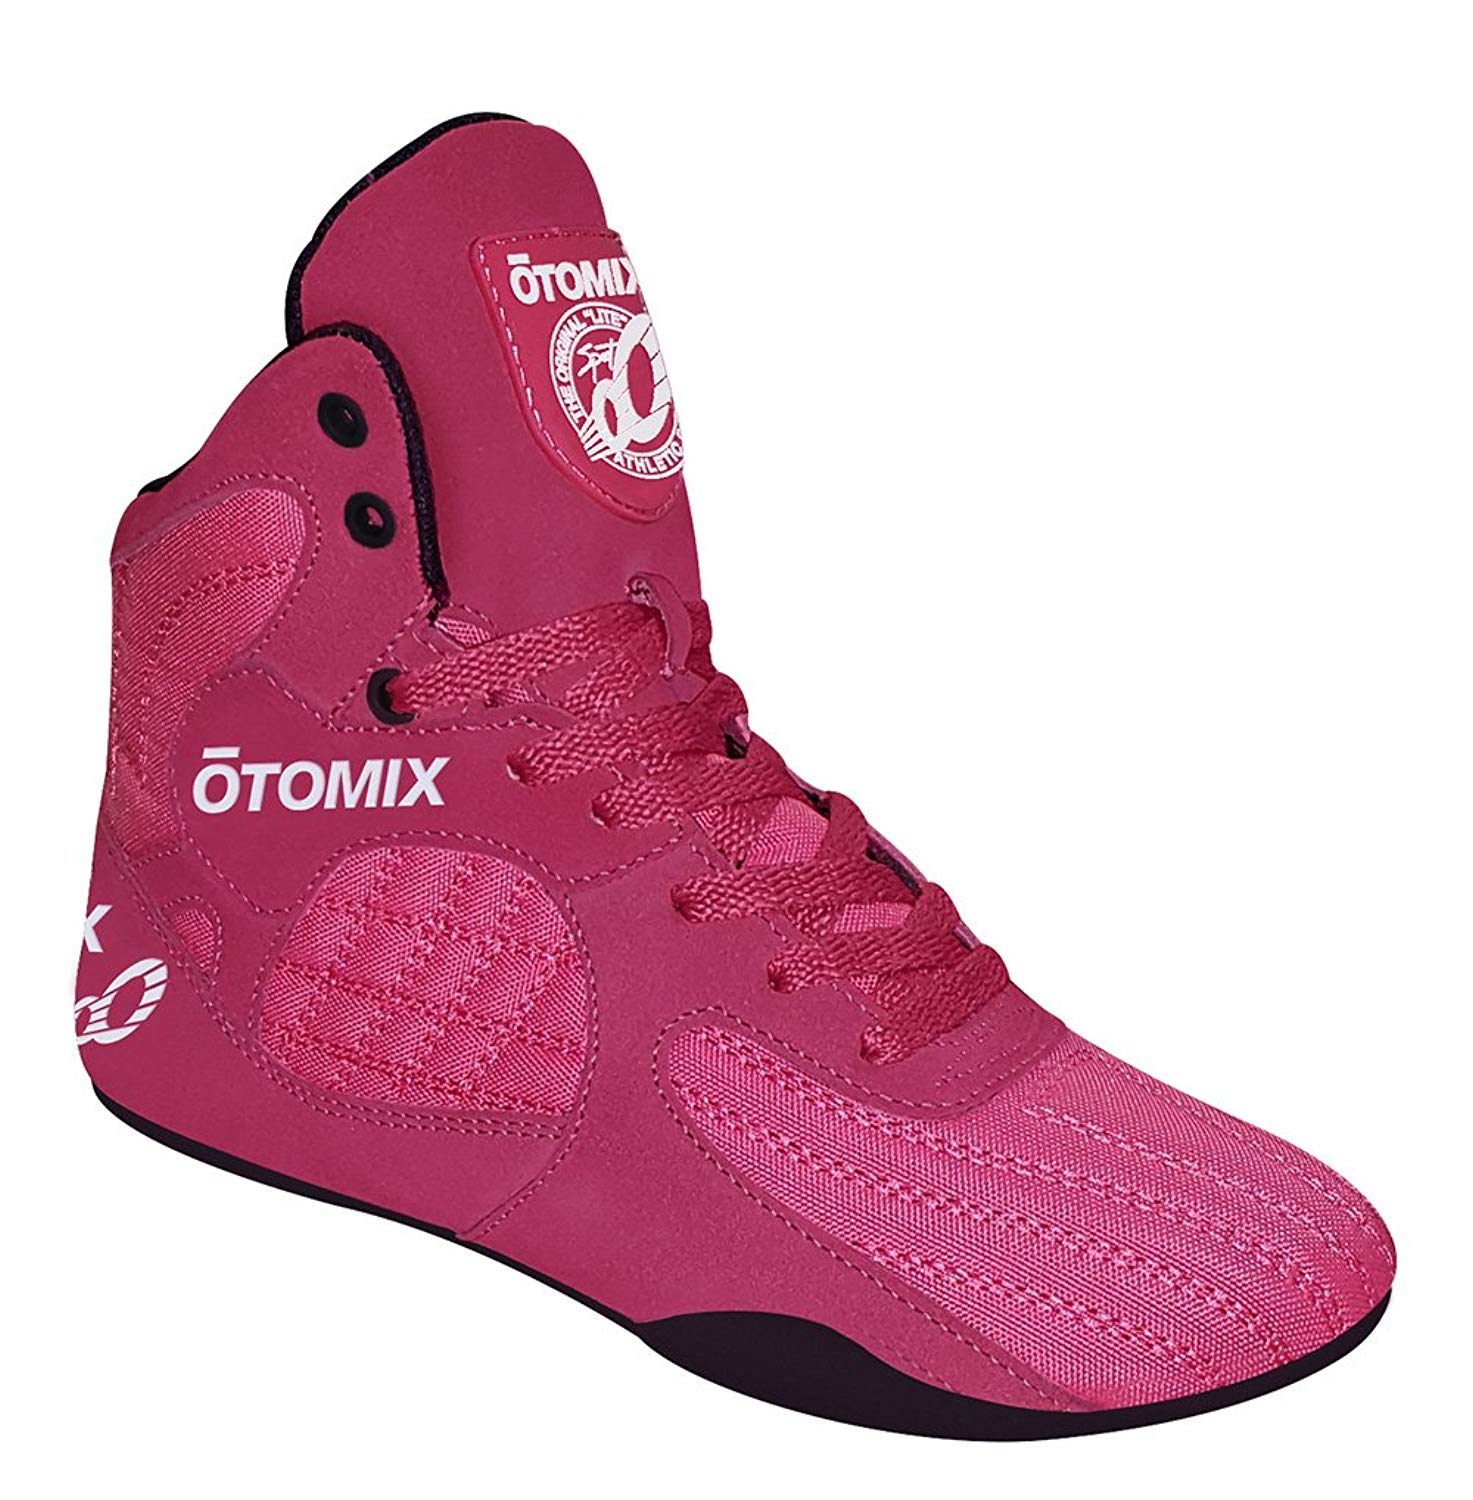 d905850c3010f3 Get Quotations · Otomix Pink   Black Stingray Escape Bodybuilding  Weightlifting MMA   Boxing Shoes